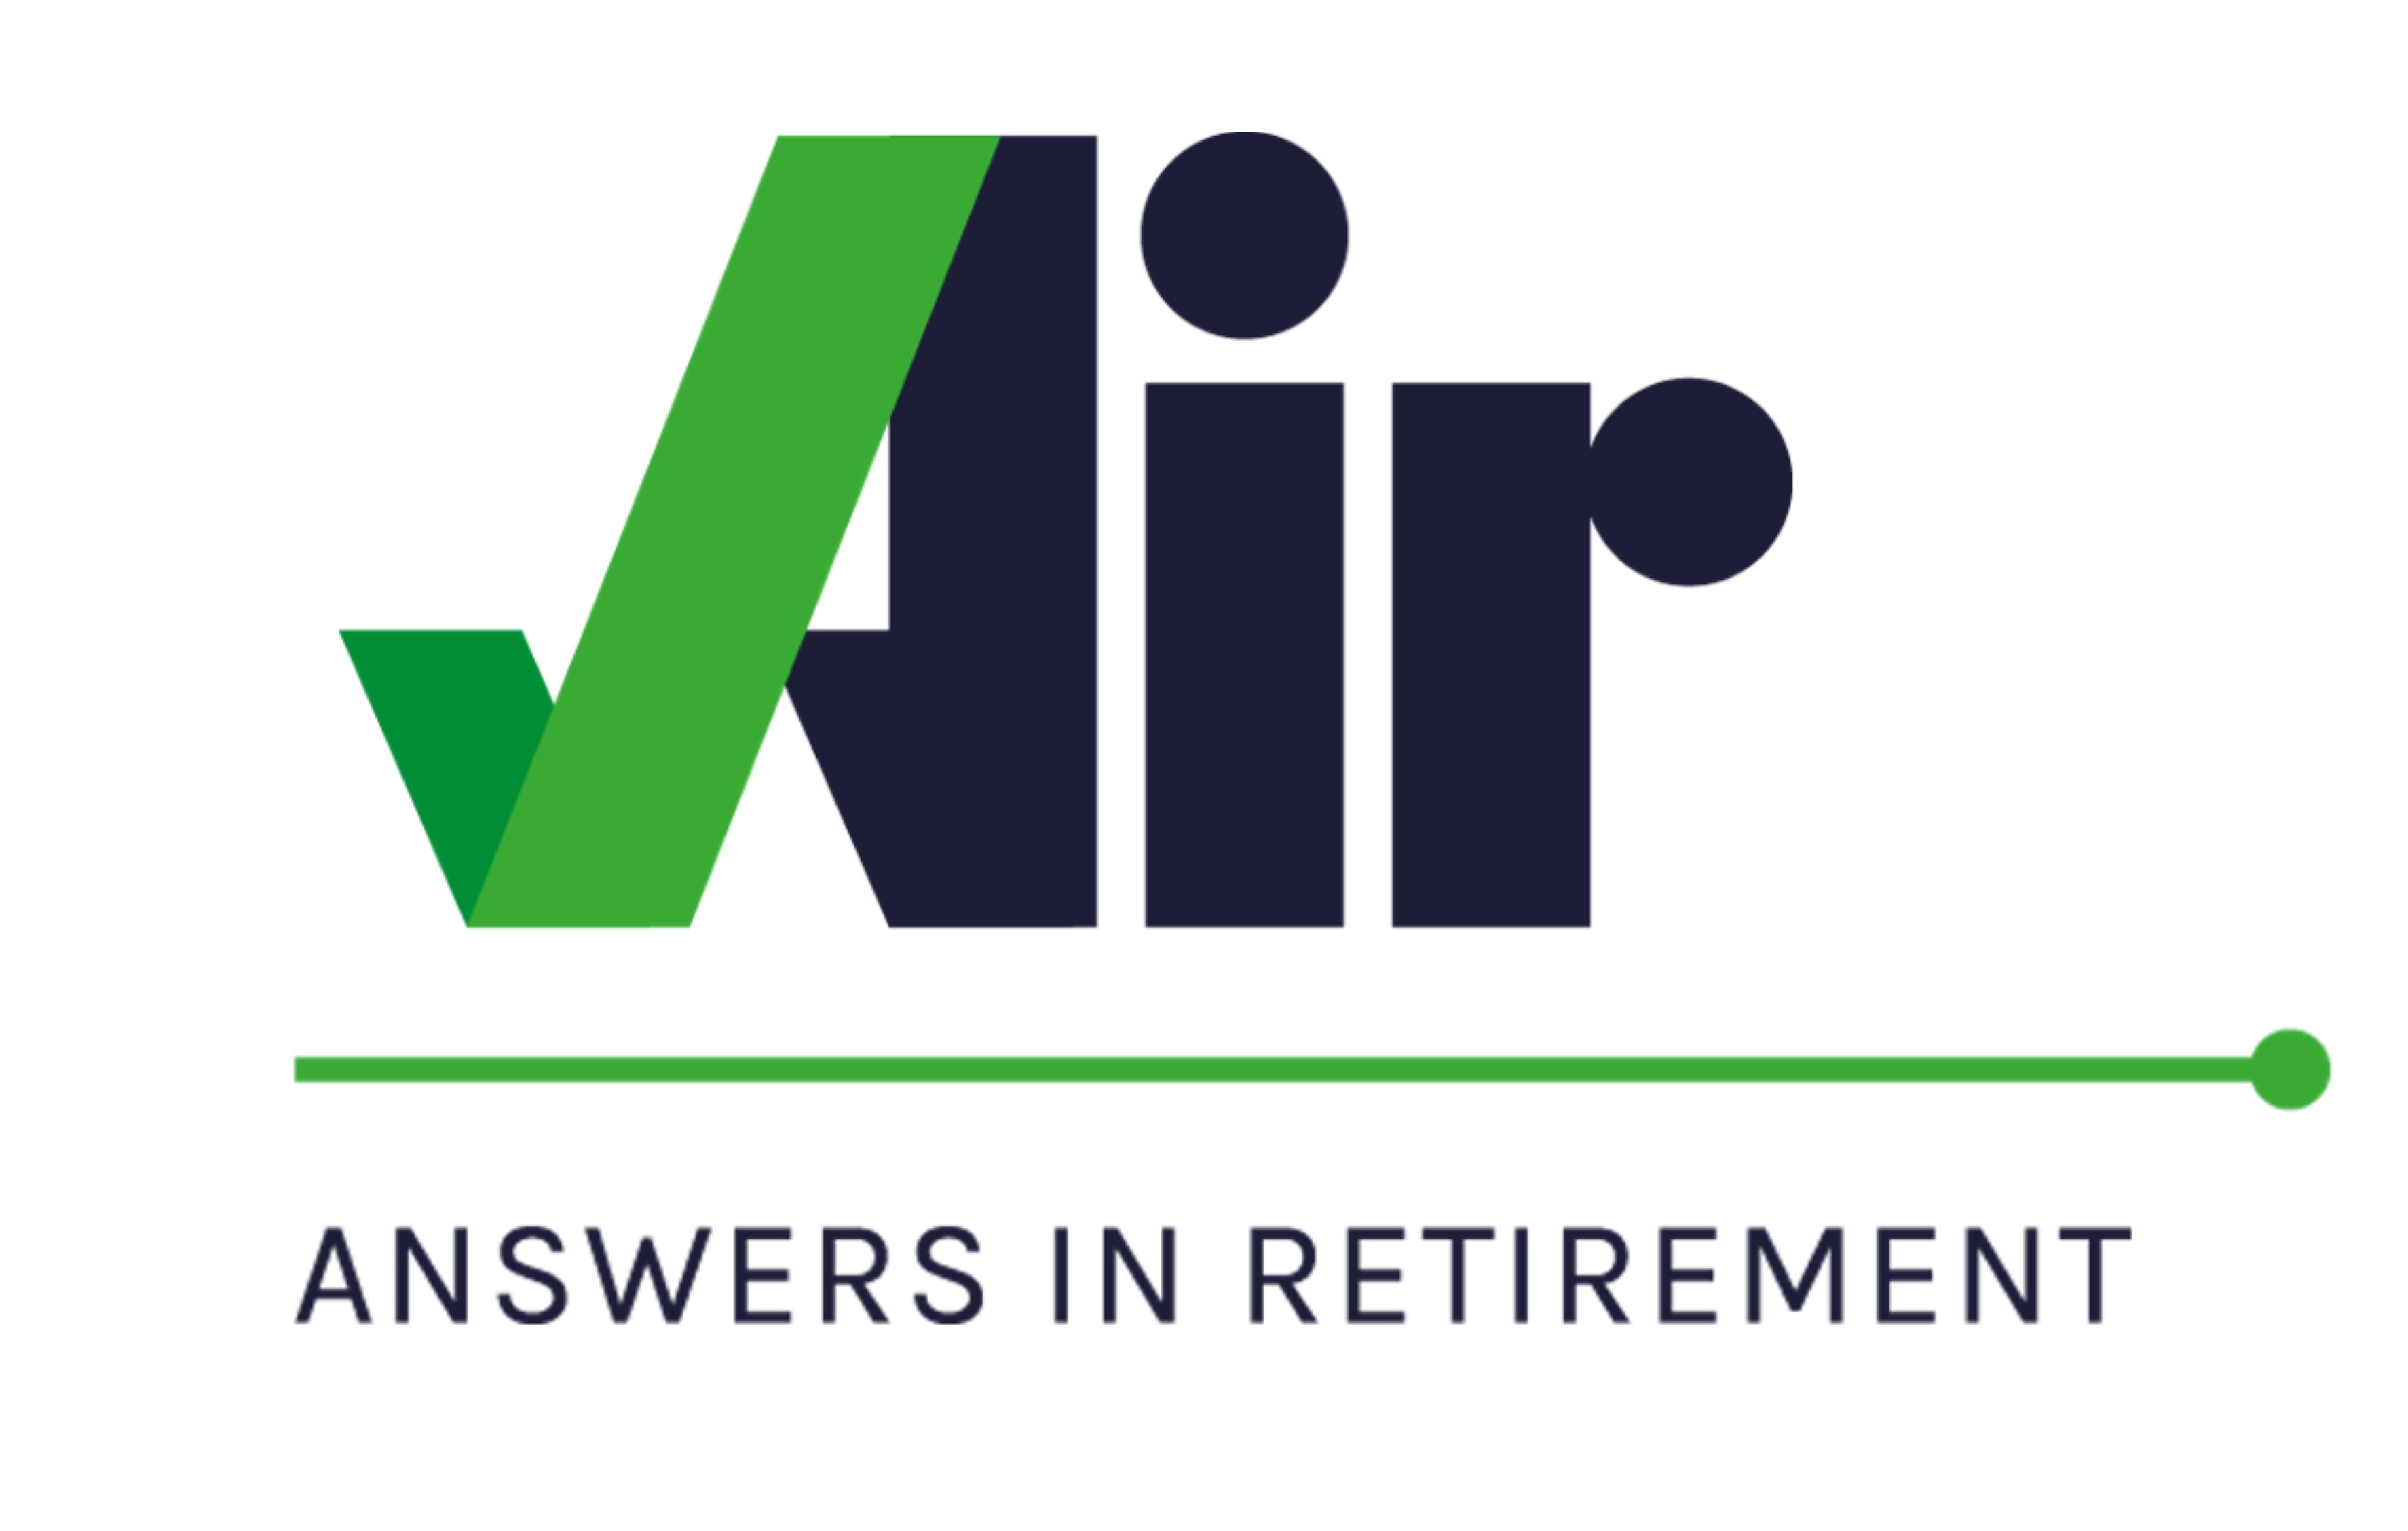 Answers in Retirement